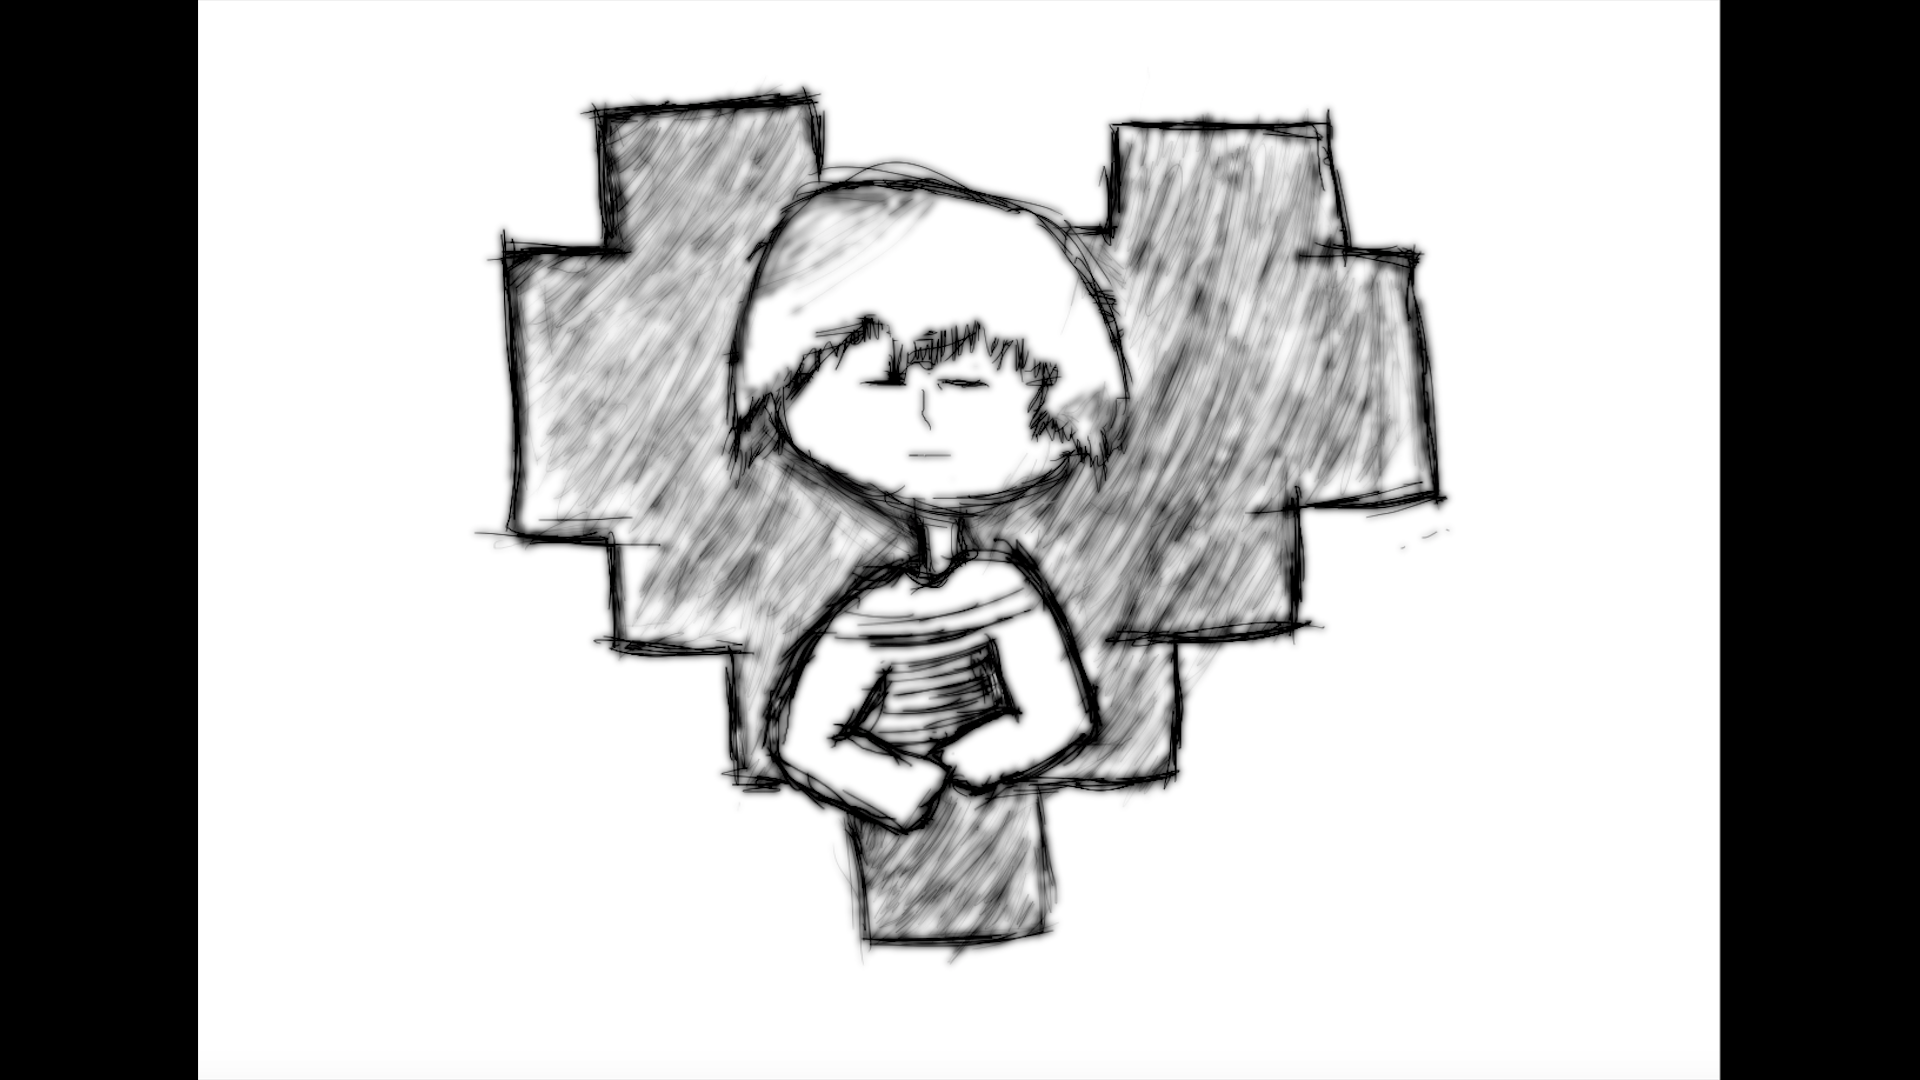 Undertale - Stay Determined!